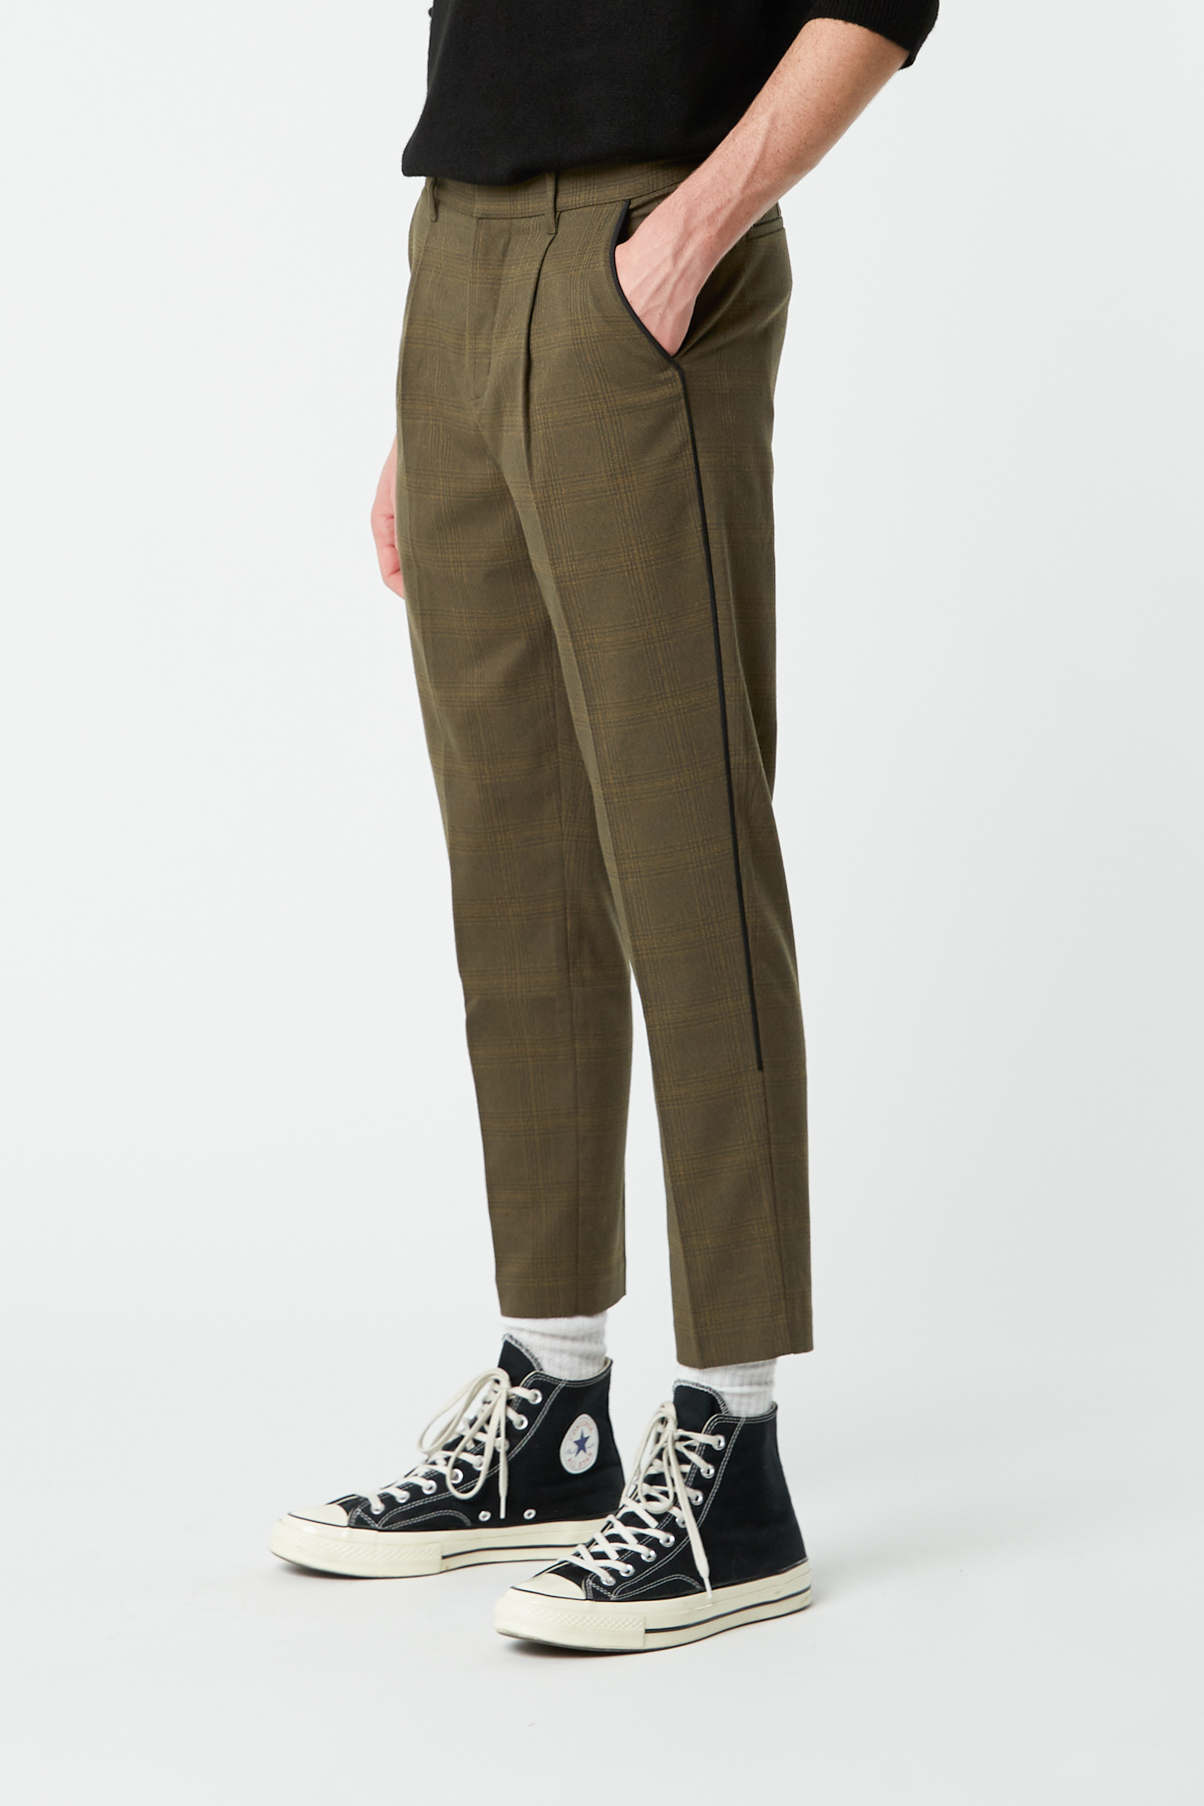 Pant 2373 Olive Check 1